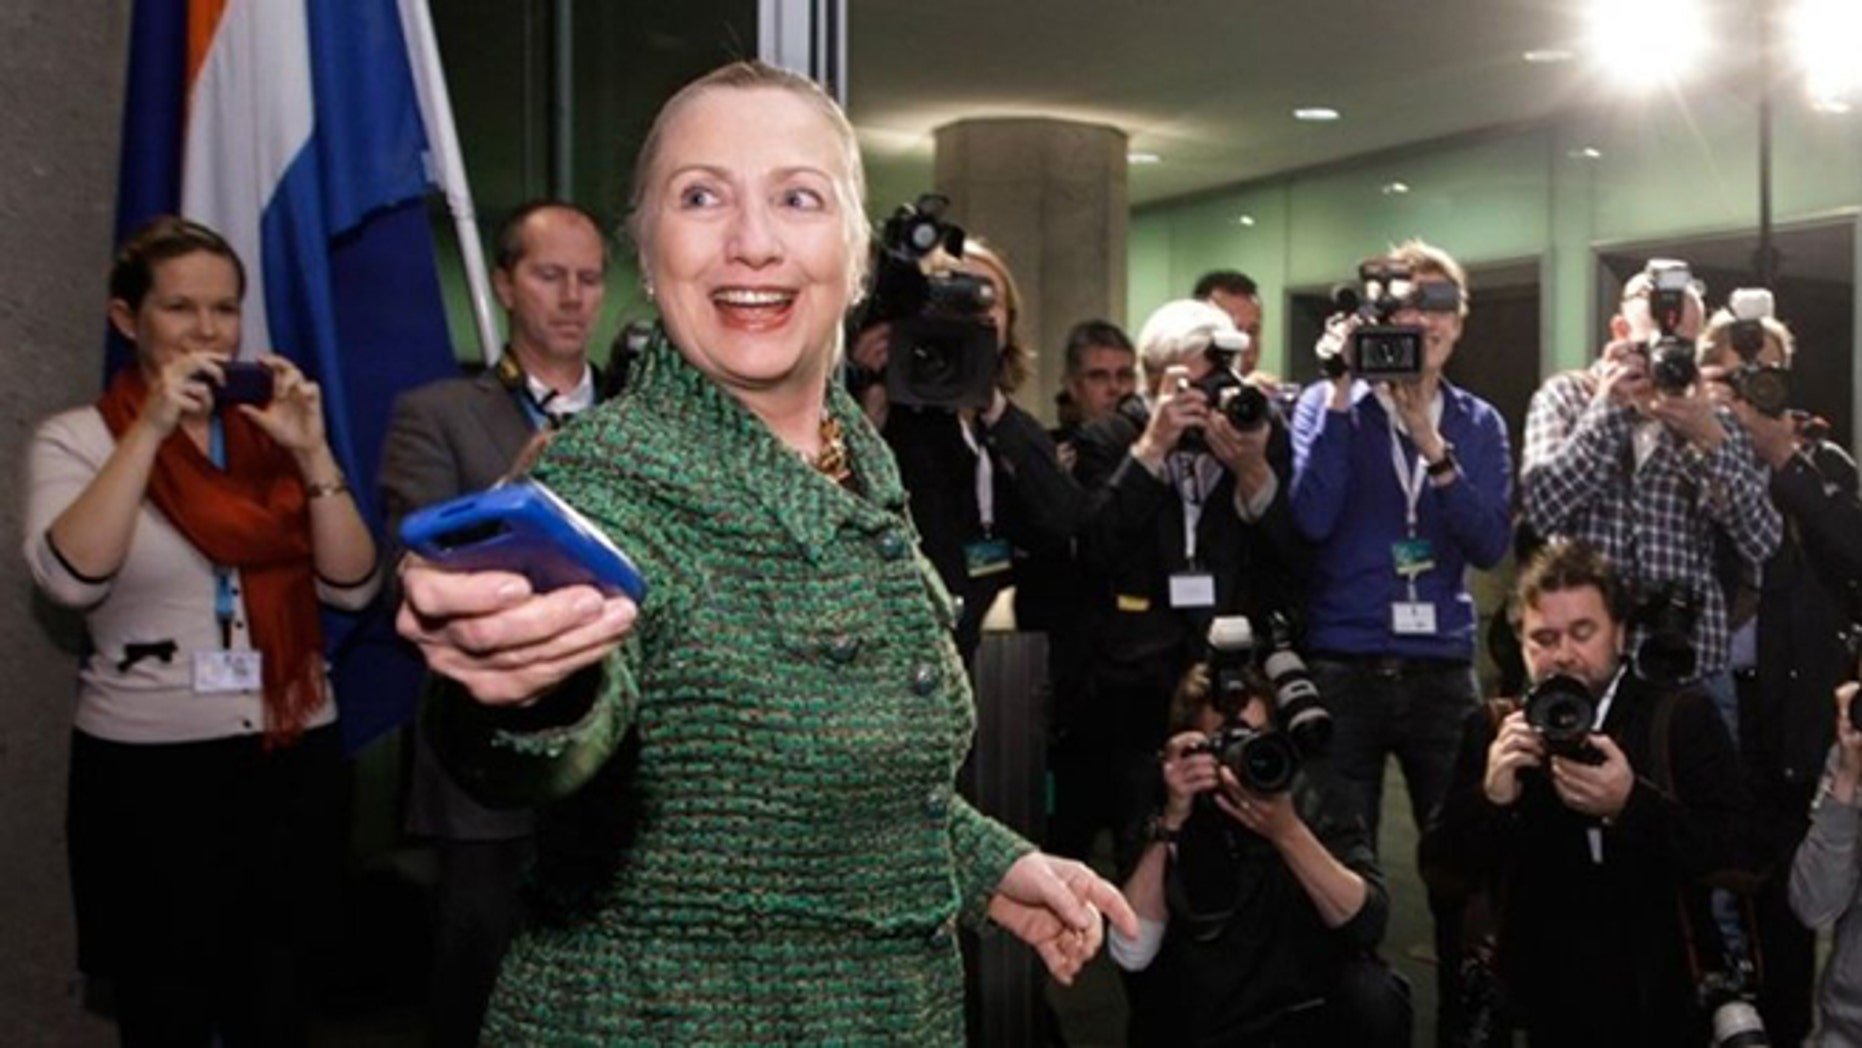 Then-Secretary of State Hillary Rodham Clinton hands off her mobile phone after arriving to meet with Dutch Foreign Minister Uri Rosenthal at the Ministry of Foreign Affairs in The Hague, Netherlands. (AP Photo/J. Scott Applewhite, Pool/File)